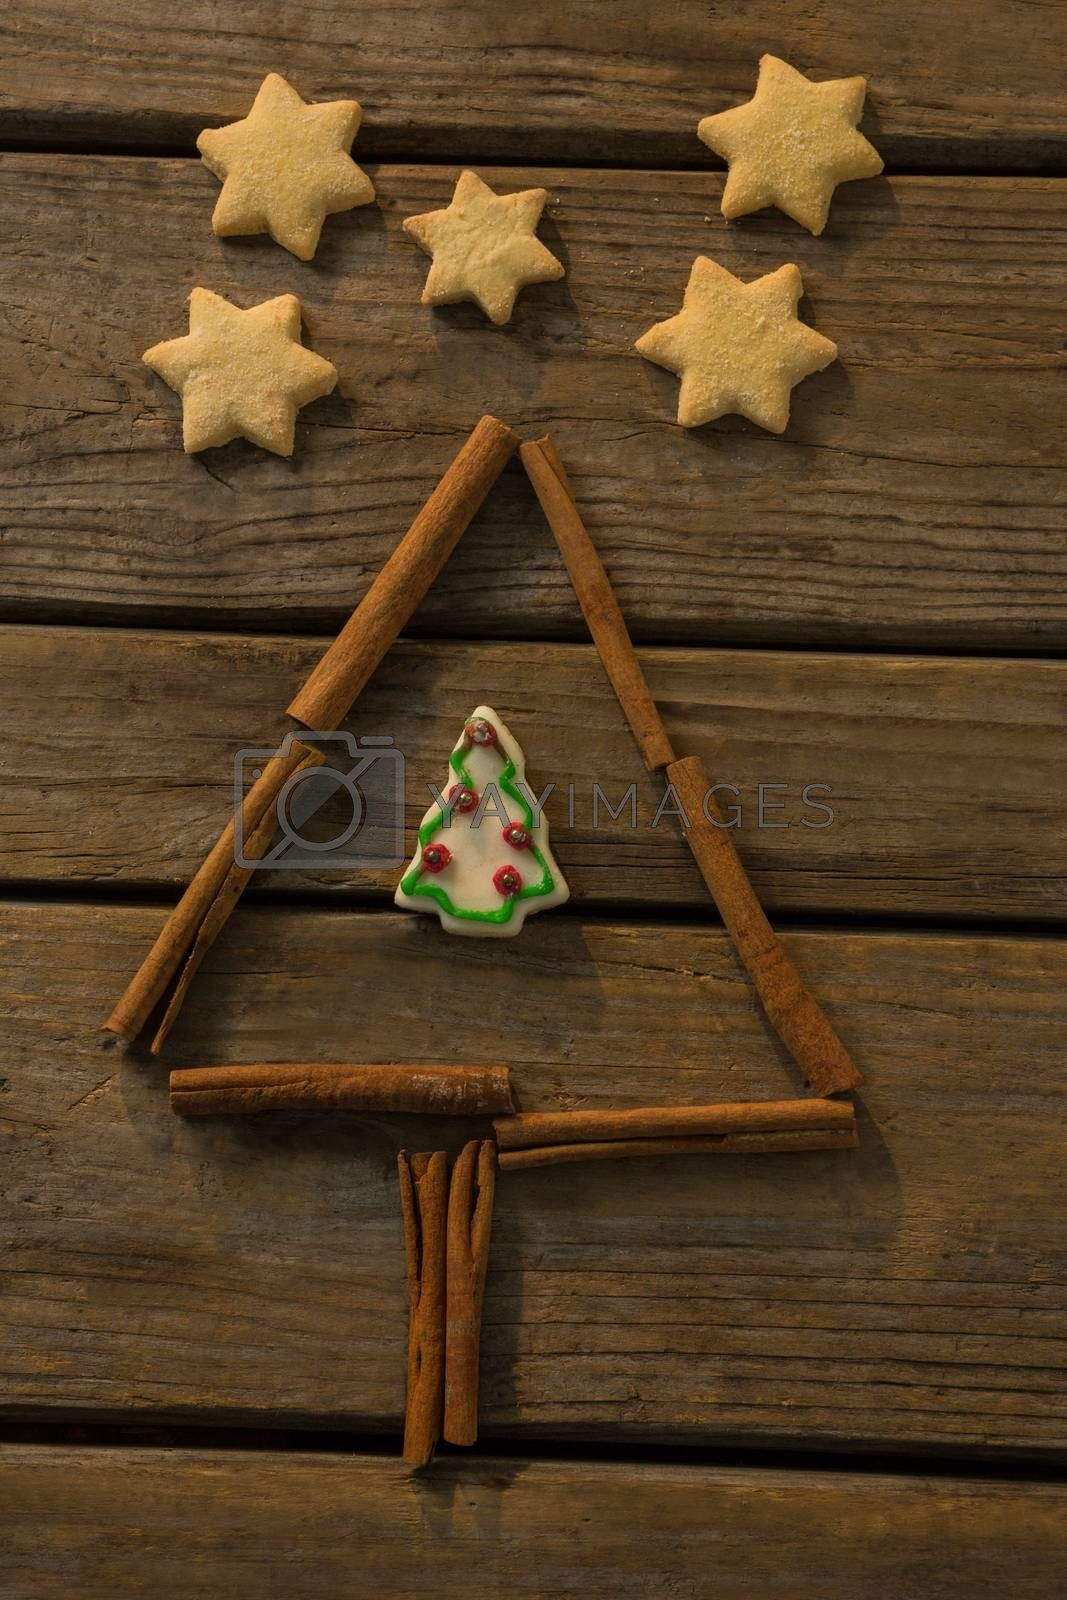 Overhead view of star shape cookies by Christmas tree made with cinnamon stick by Wavebreakmedia